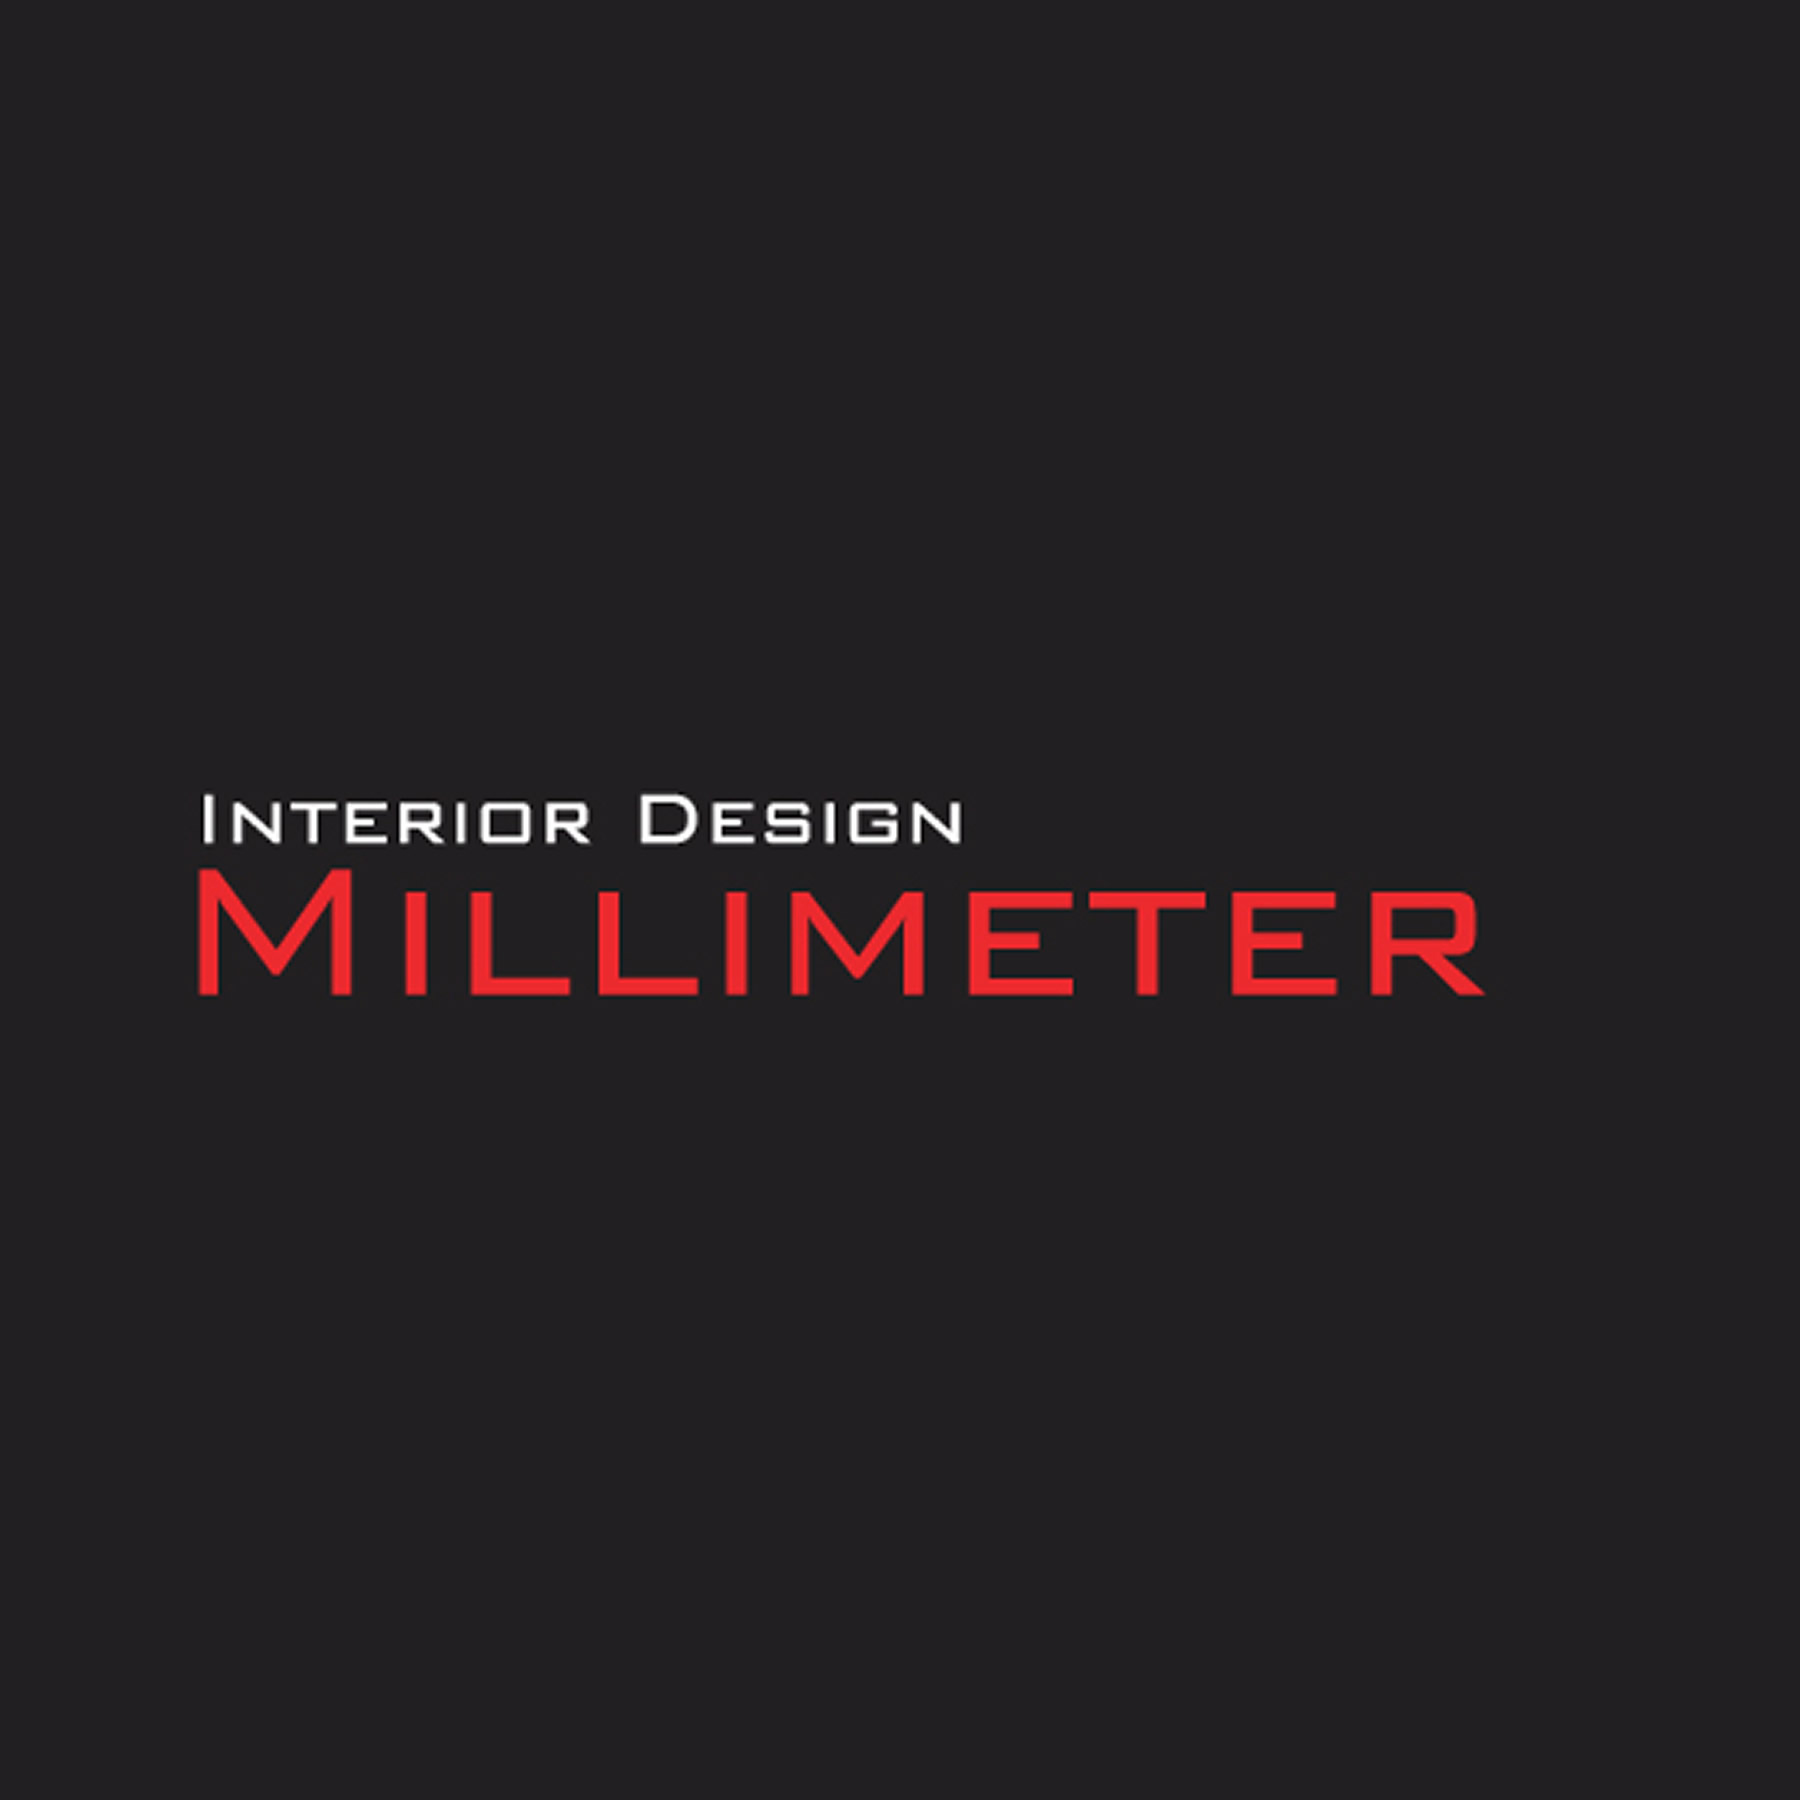 NAME Millimeter Interior Design Limited